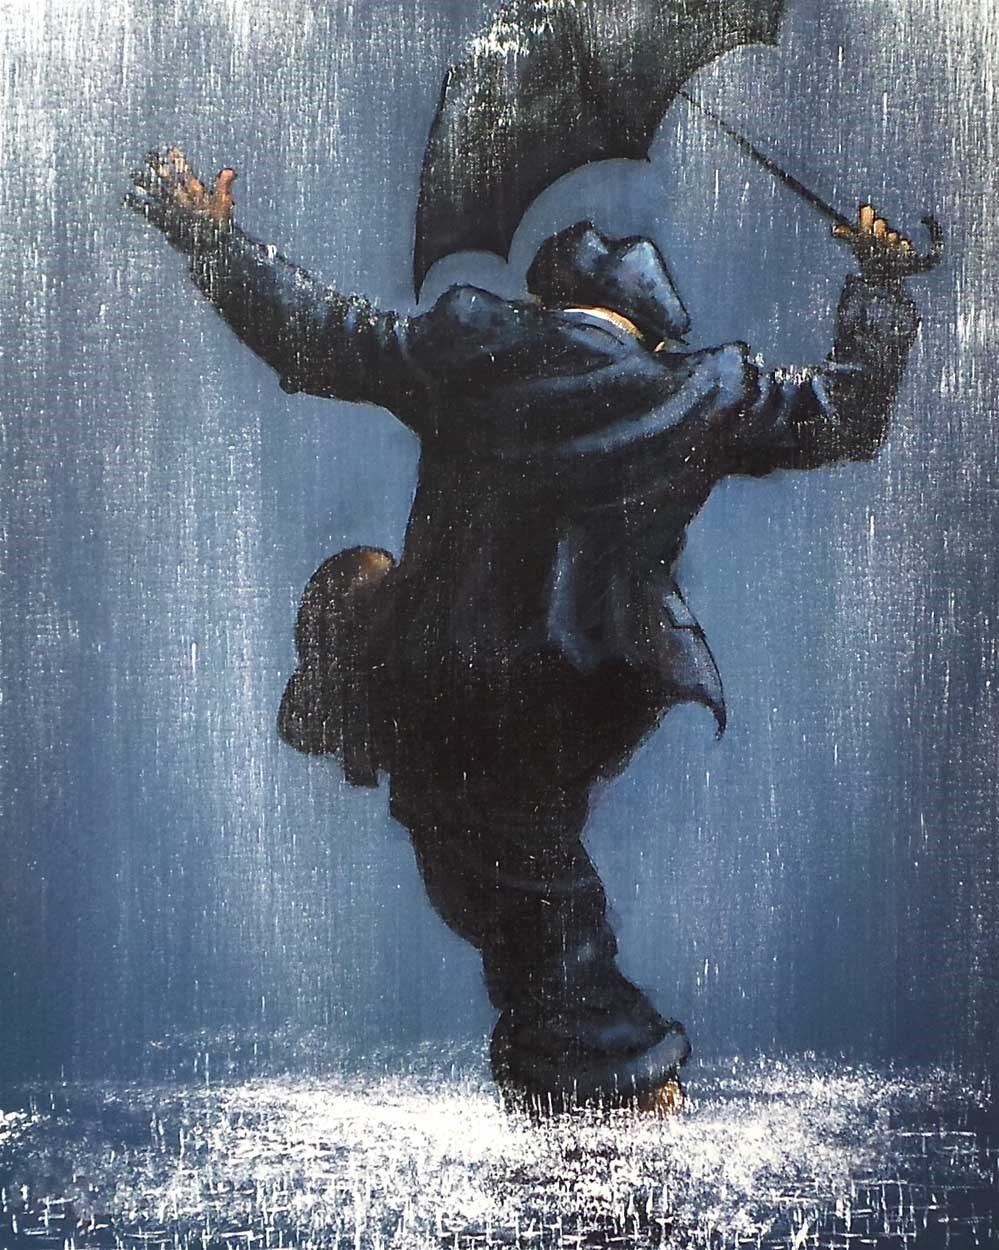 Singing in the Rain by Alexander Millar, Charity | Gadgie | Rare | Northern | Nostalgic | Film